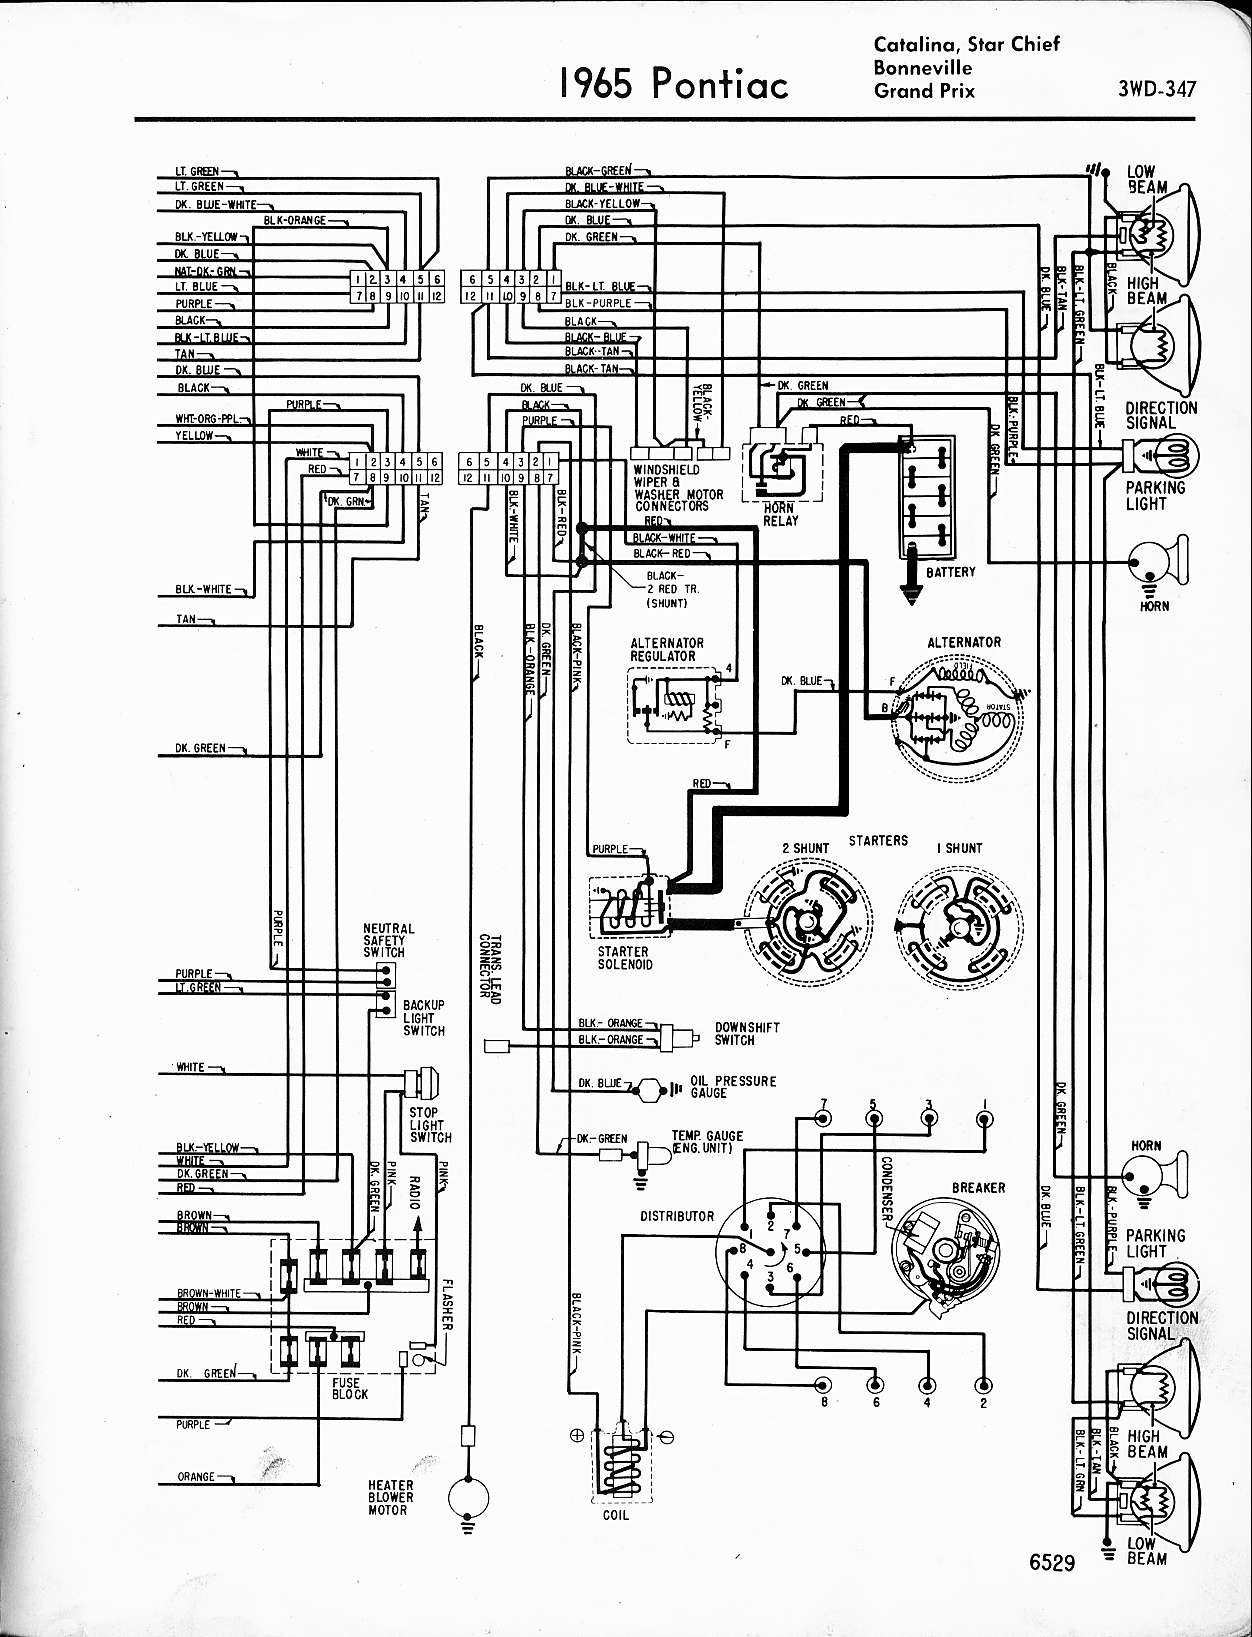 wallace racing wiring diagrams rh wallaceracing com pontiac radio wiring  diagram pontiac radio wiring diagram